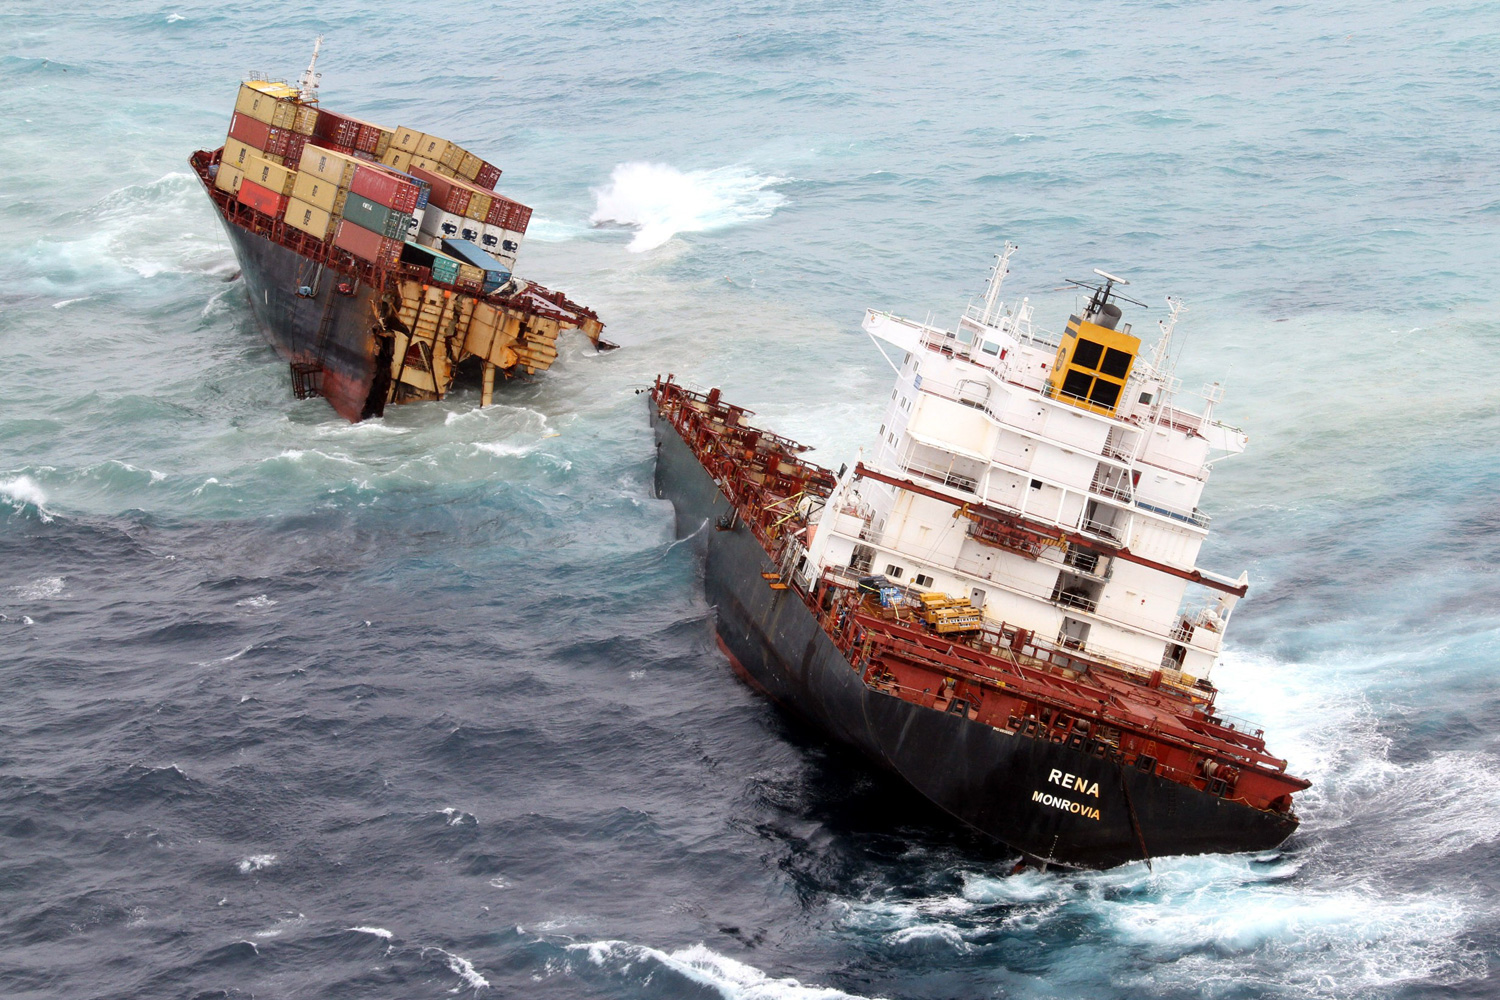 January 8, 2012. Part of a container ship marooned off New Zealand  slips into the sea. The ship, the Rena ran aground on a reef in October, leading to a  spill of cargo and fuel oil that is considered the nation's worst eco-disaster.